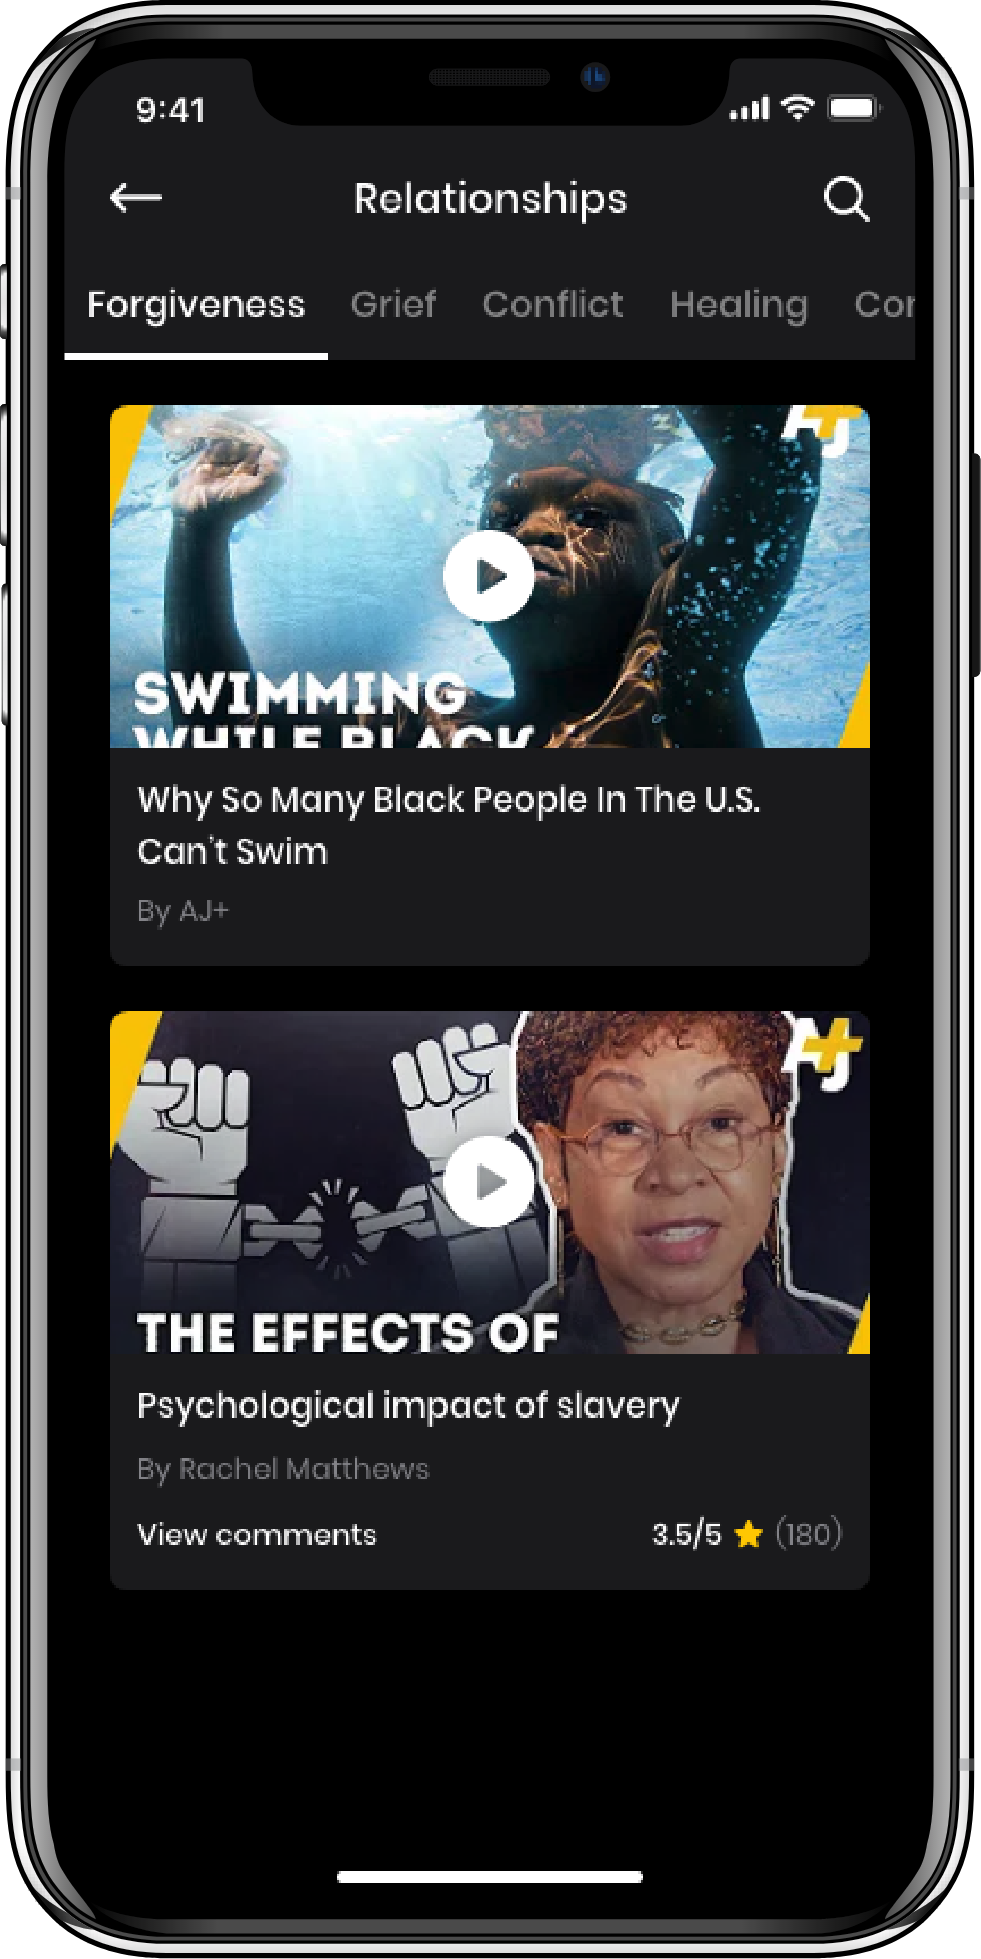 image of the iPhone app